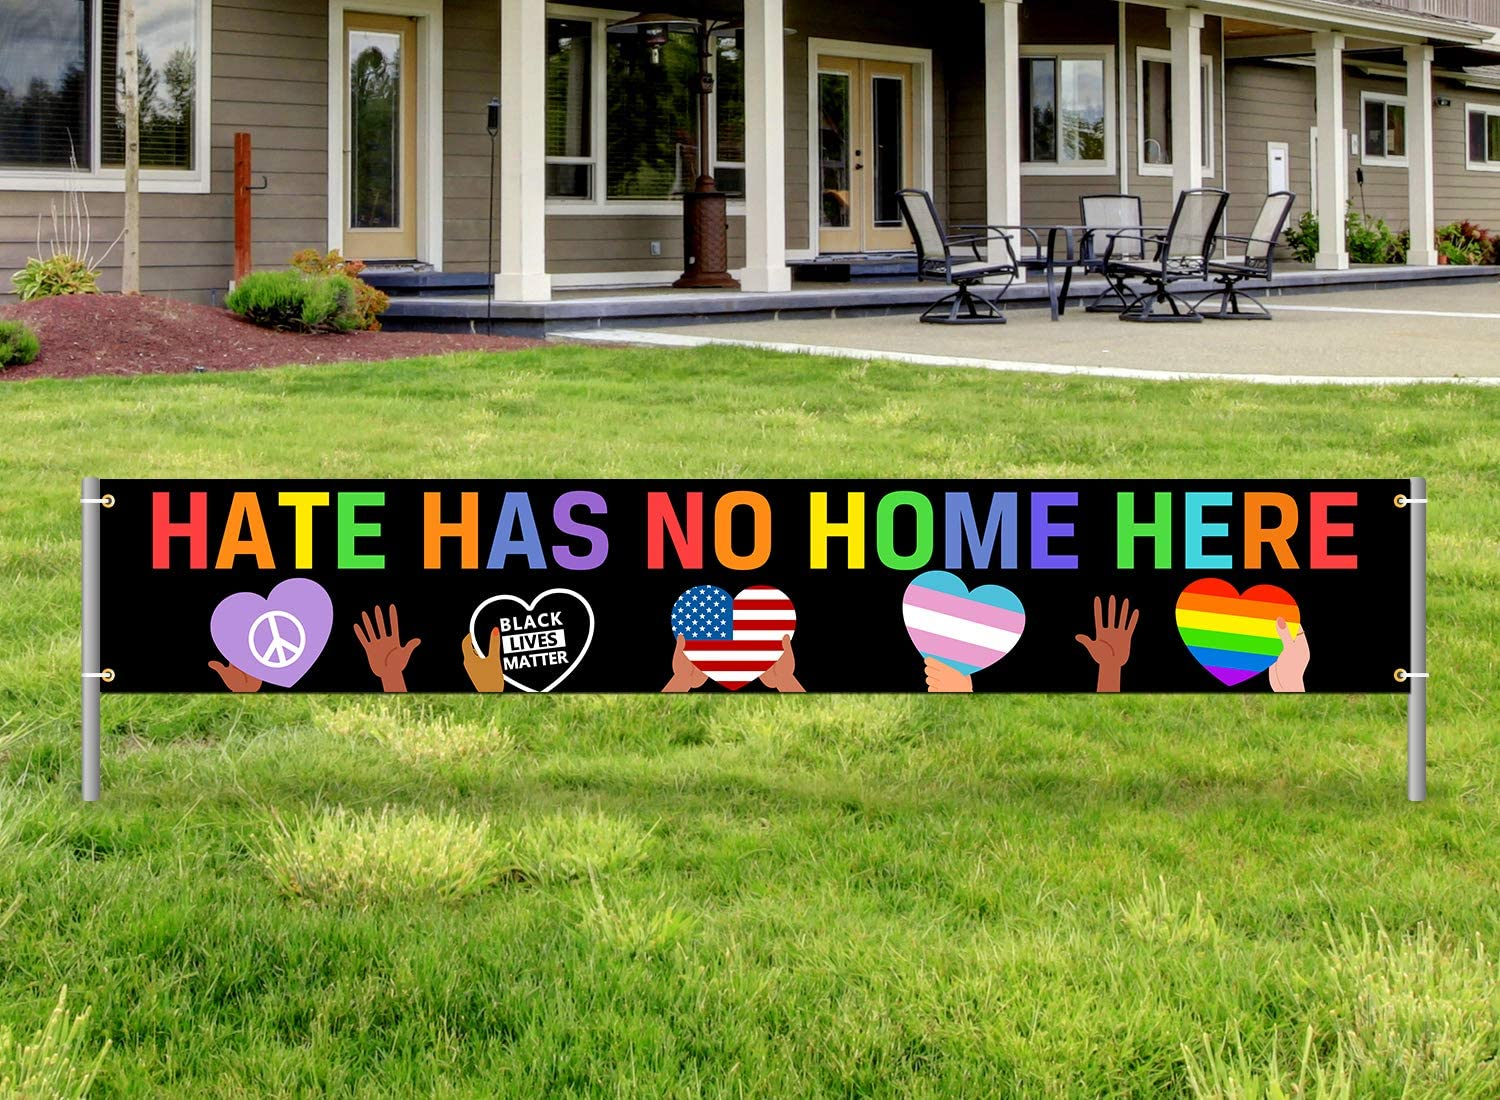 Hate Has No Home Here Yard Sign Banner,Black Lives Matter Outdoor Banner Decor